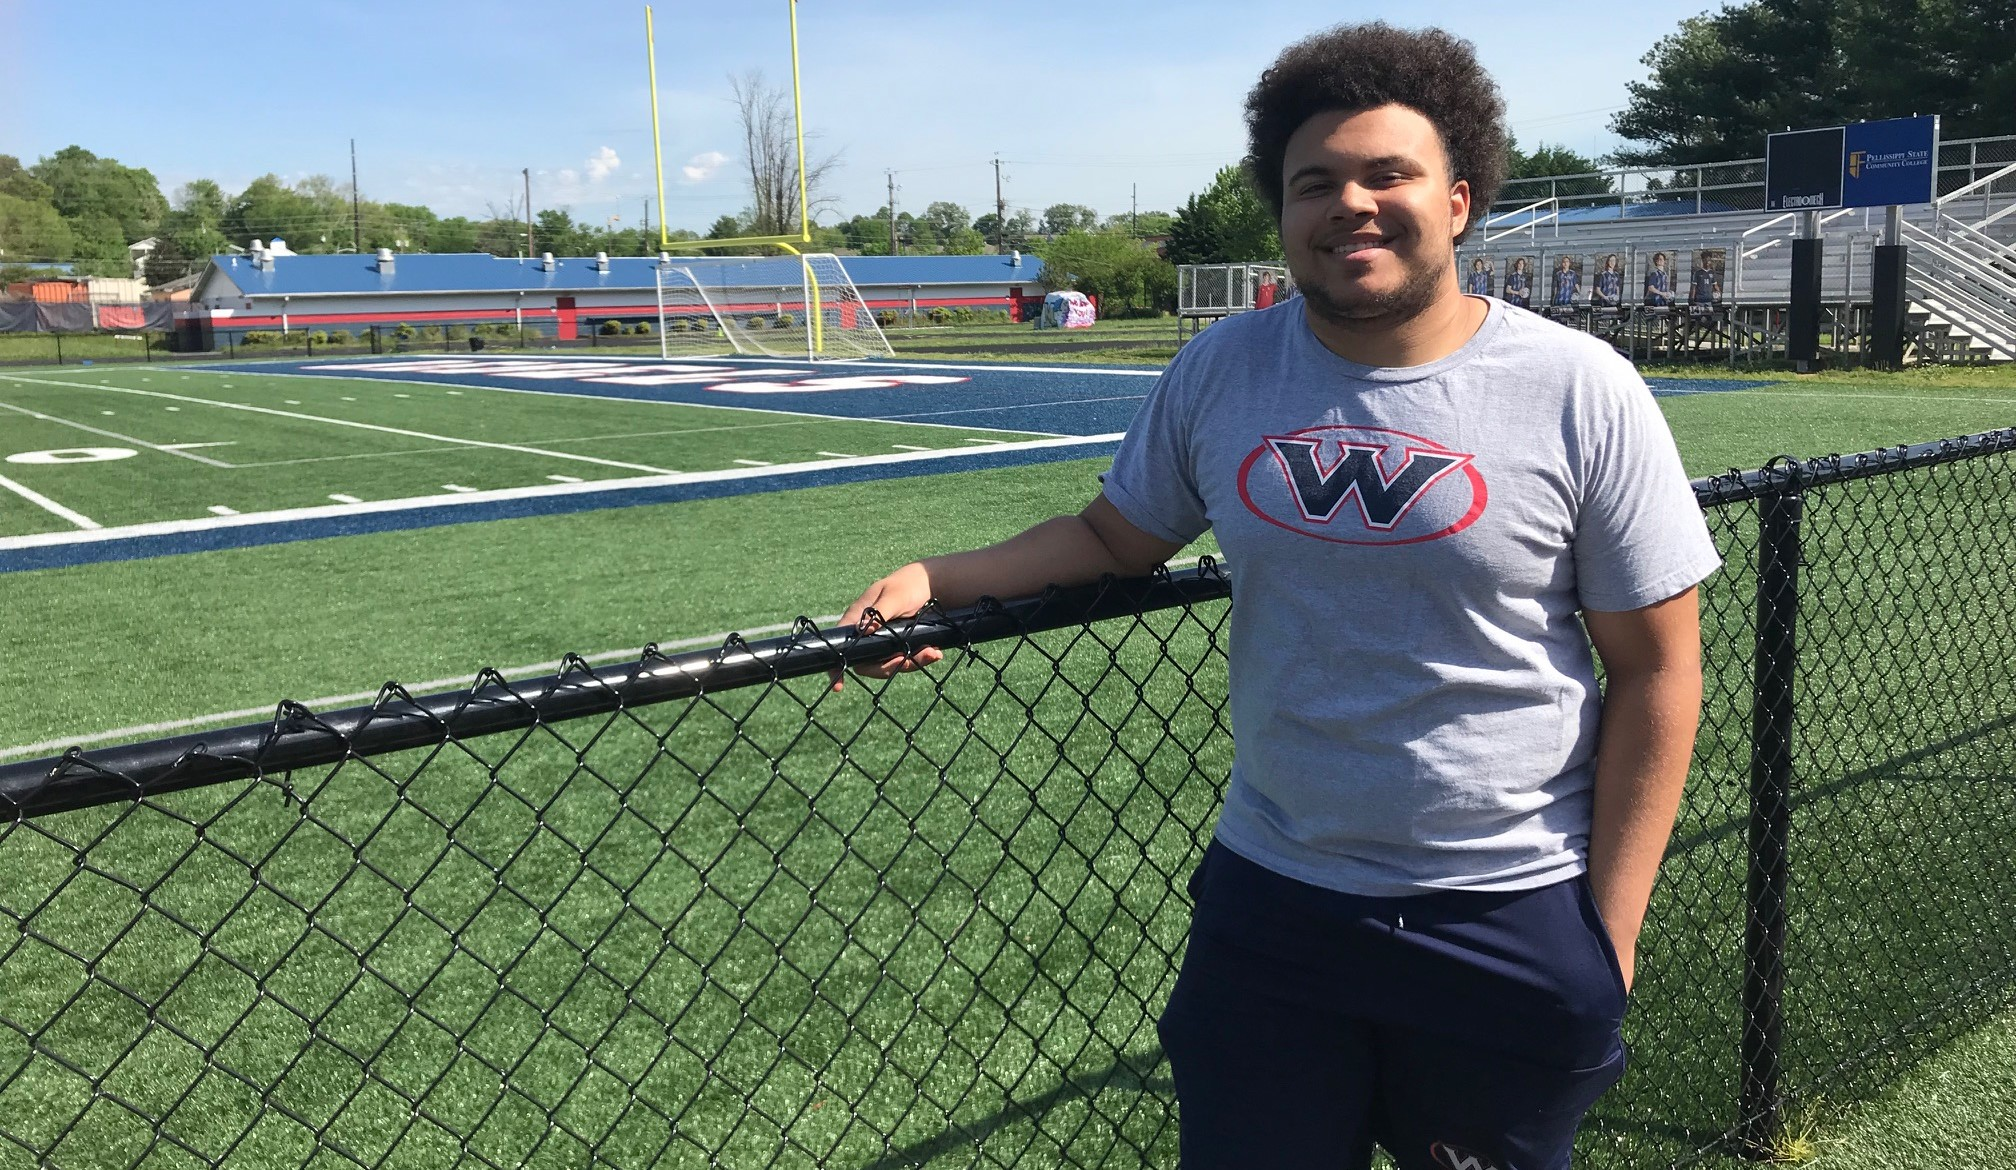 DeVore Solomon is a defensive lineman on the West High School football team who was recently honore as the Boys & Girls Club Youth of the Year.